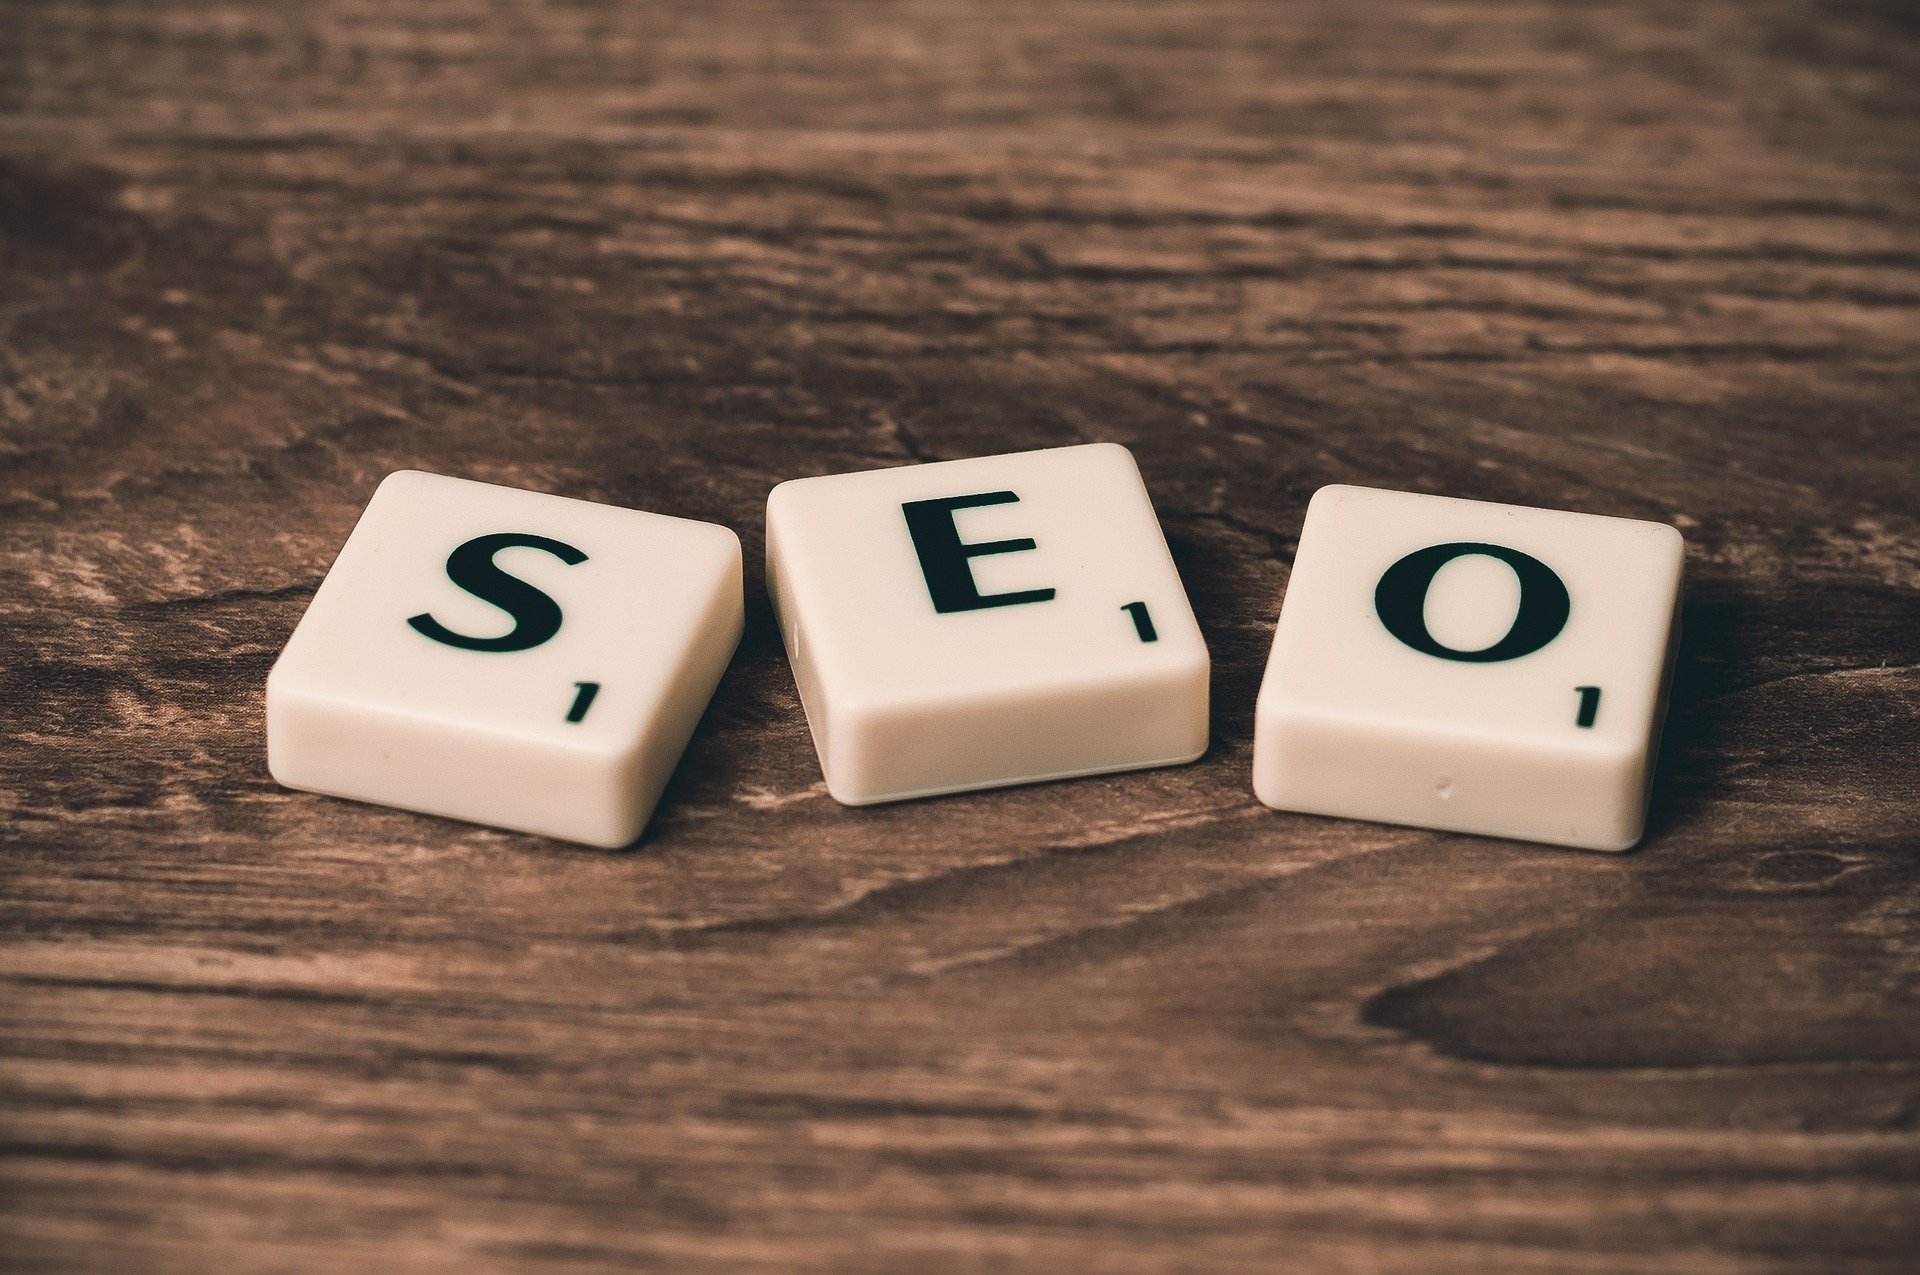 5 SEO tips small businesses can't afford to ignore